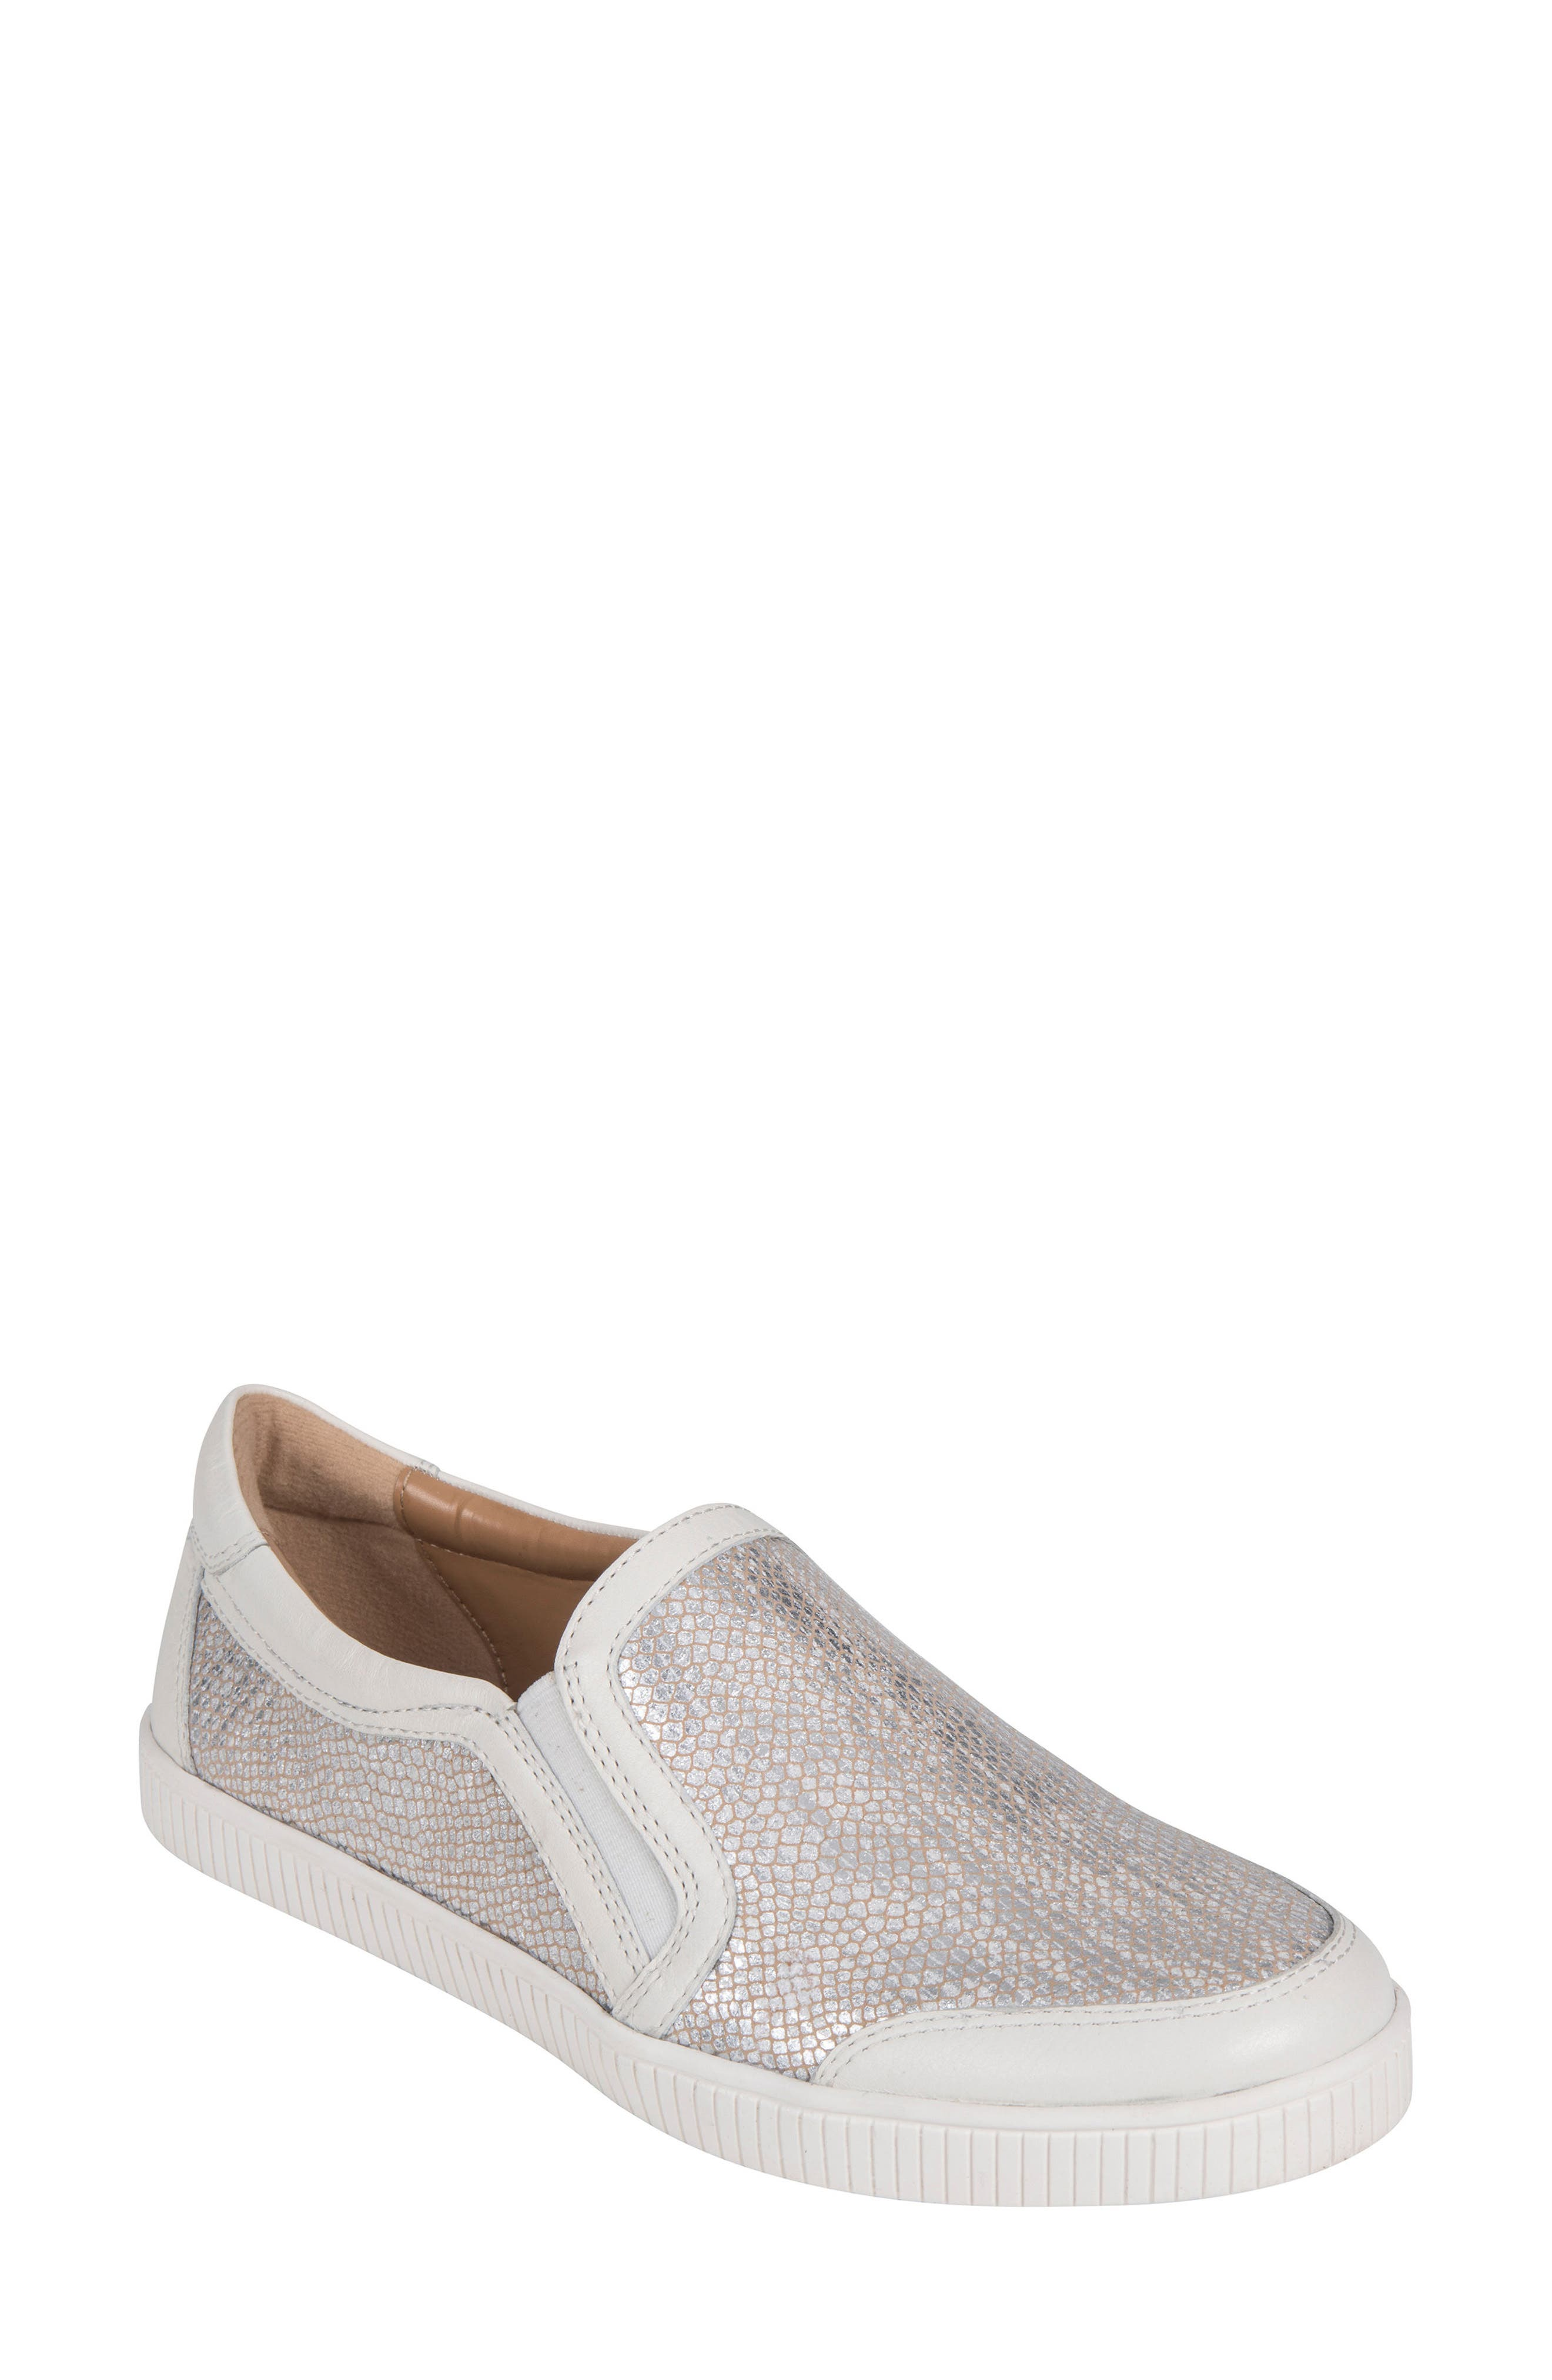 Currant Slip-On Sneaker,                         Main,                         color, 045